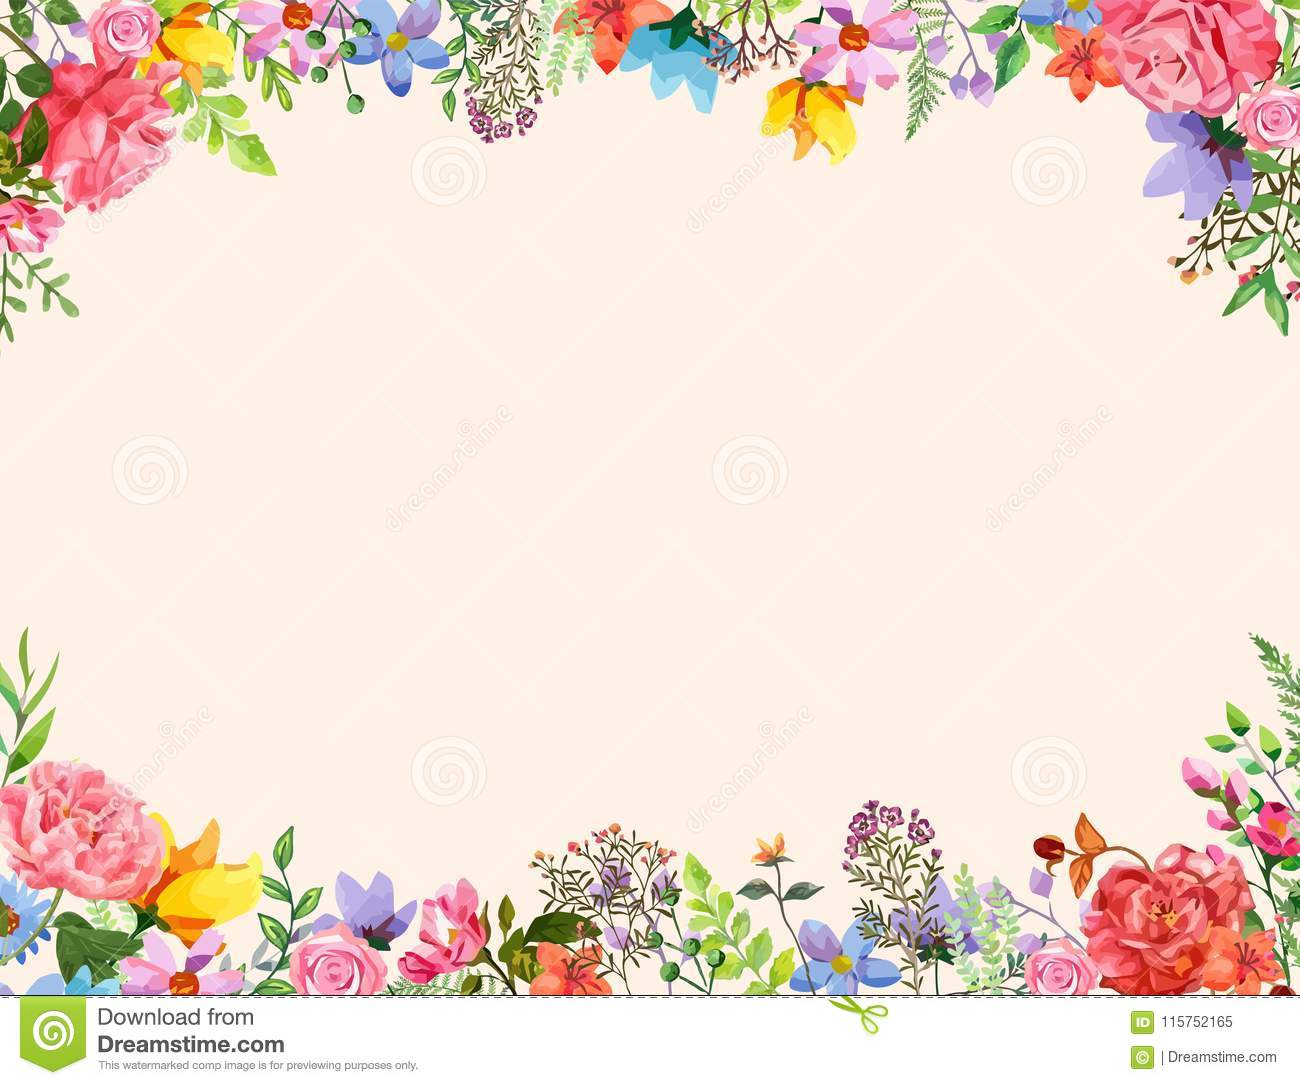 Flower Frame Invitation Design Template Vector Illustration With